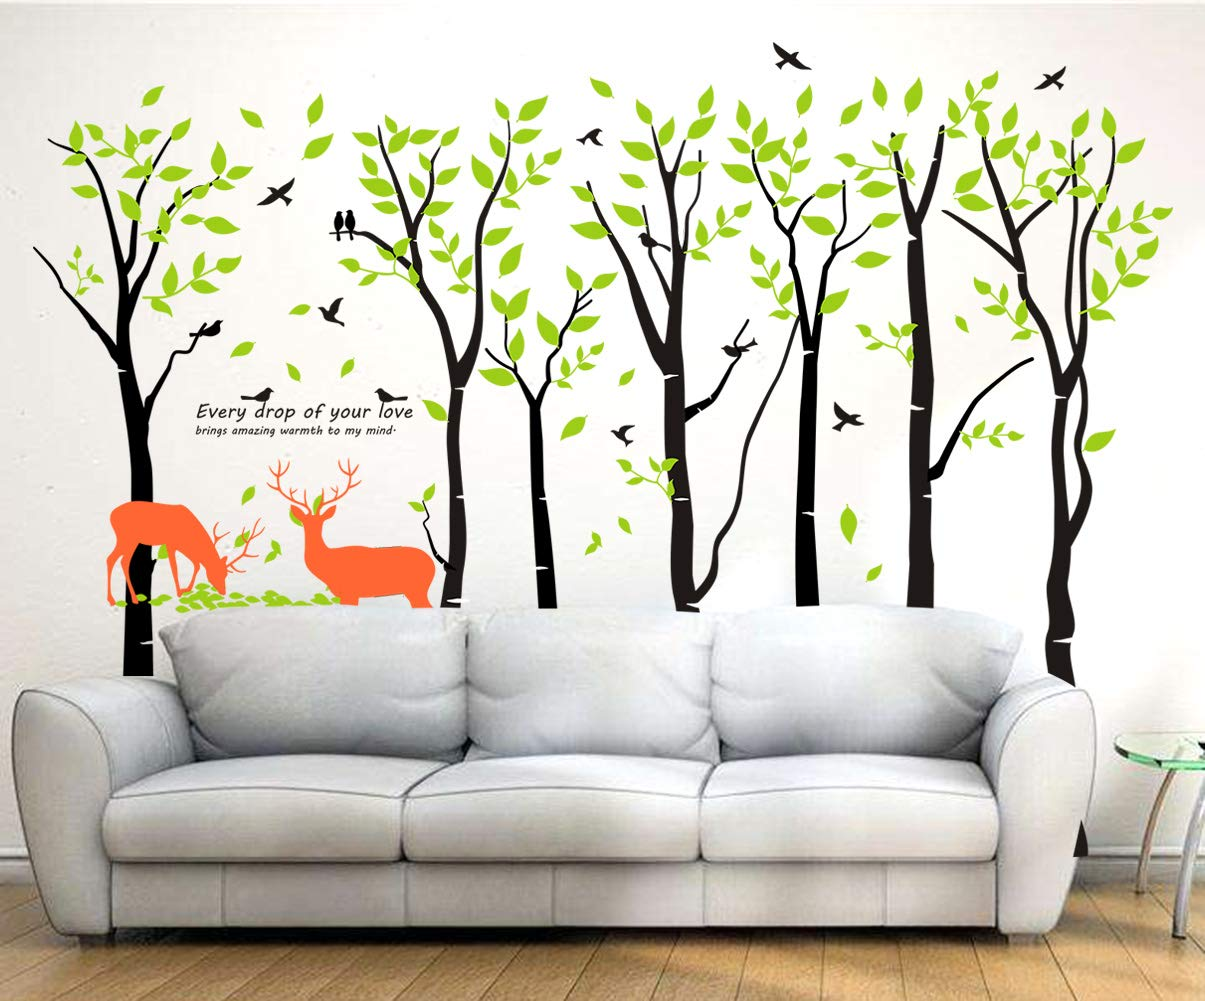 Mix Decor Tree Wall Decal - 7 Trees Wall Sticker Large Family Forest for Livingroom Kid Baby Nursery Room Deer Wooland Decoration Party Birthday Gift,118x83 Inch Black + Green by Mix Decor (Image #2)